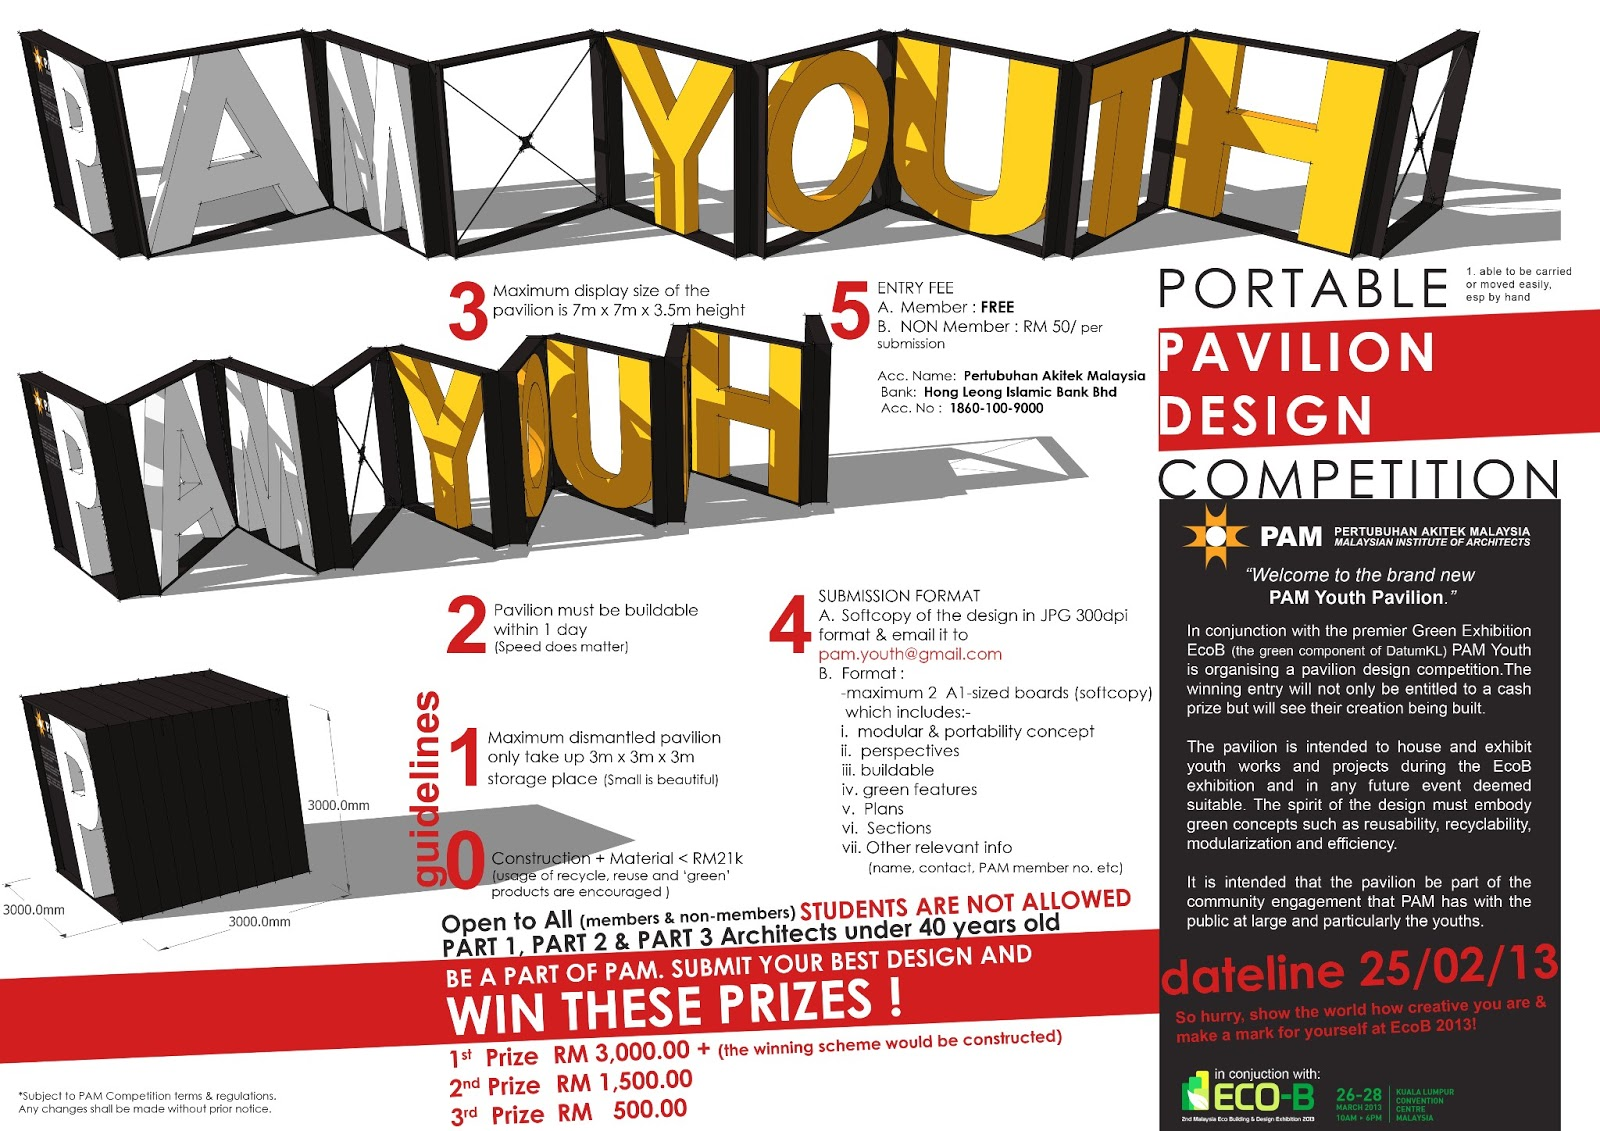 Poster design competition - In Conjunction With The Premier Green Exhibition Ecob The Green Component Of Datumkl Pam Youth Is Organizing A Pavilion Design Competition